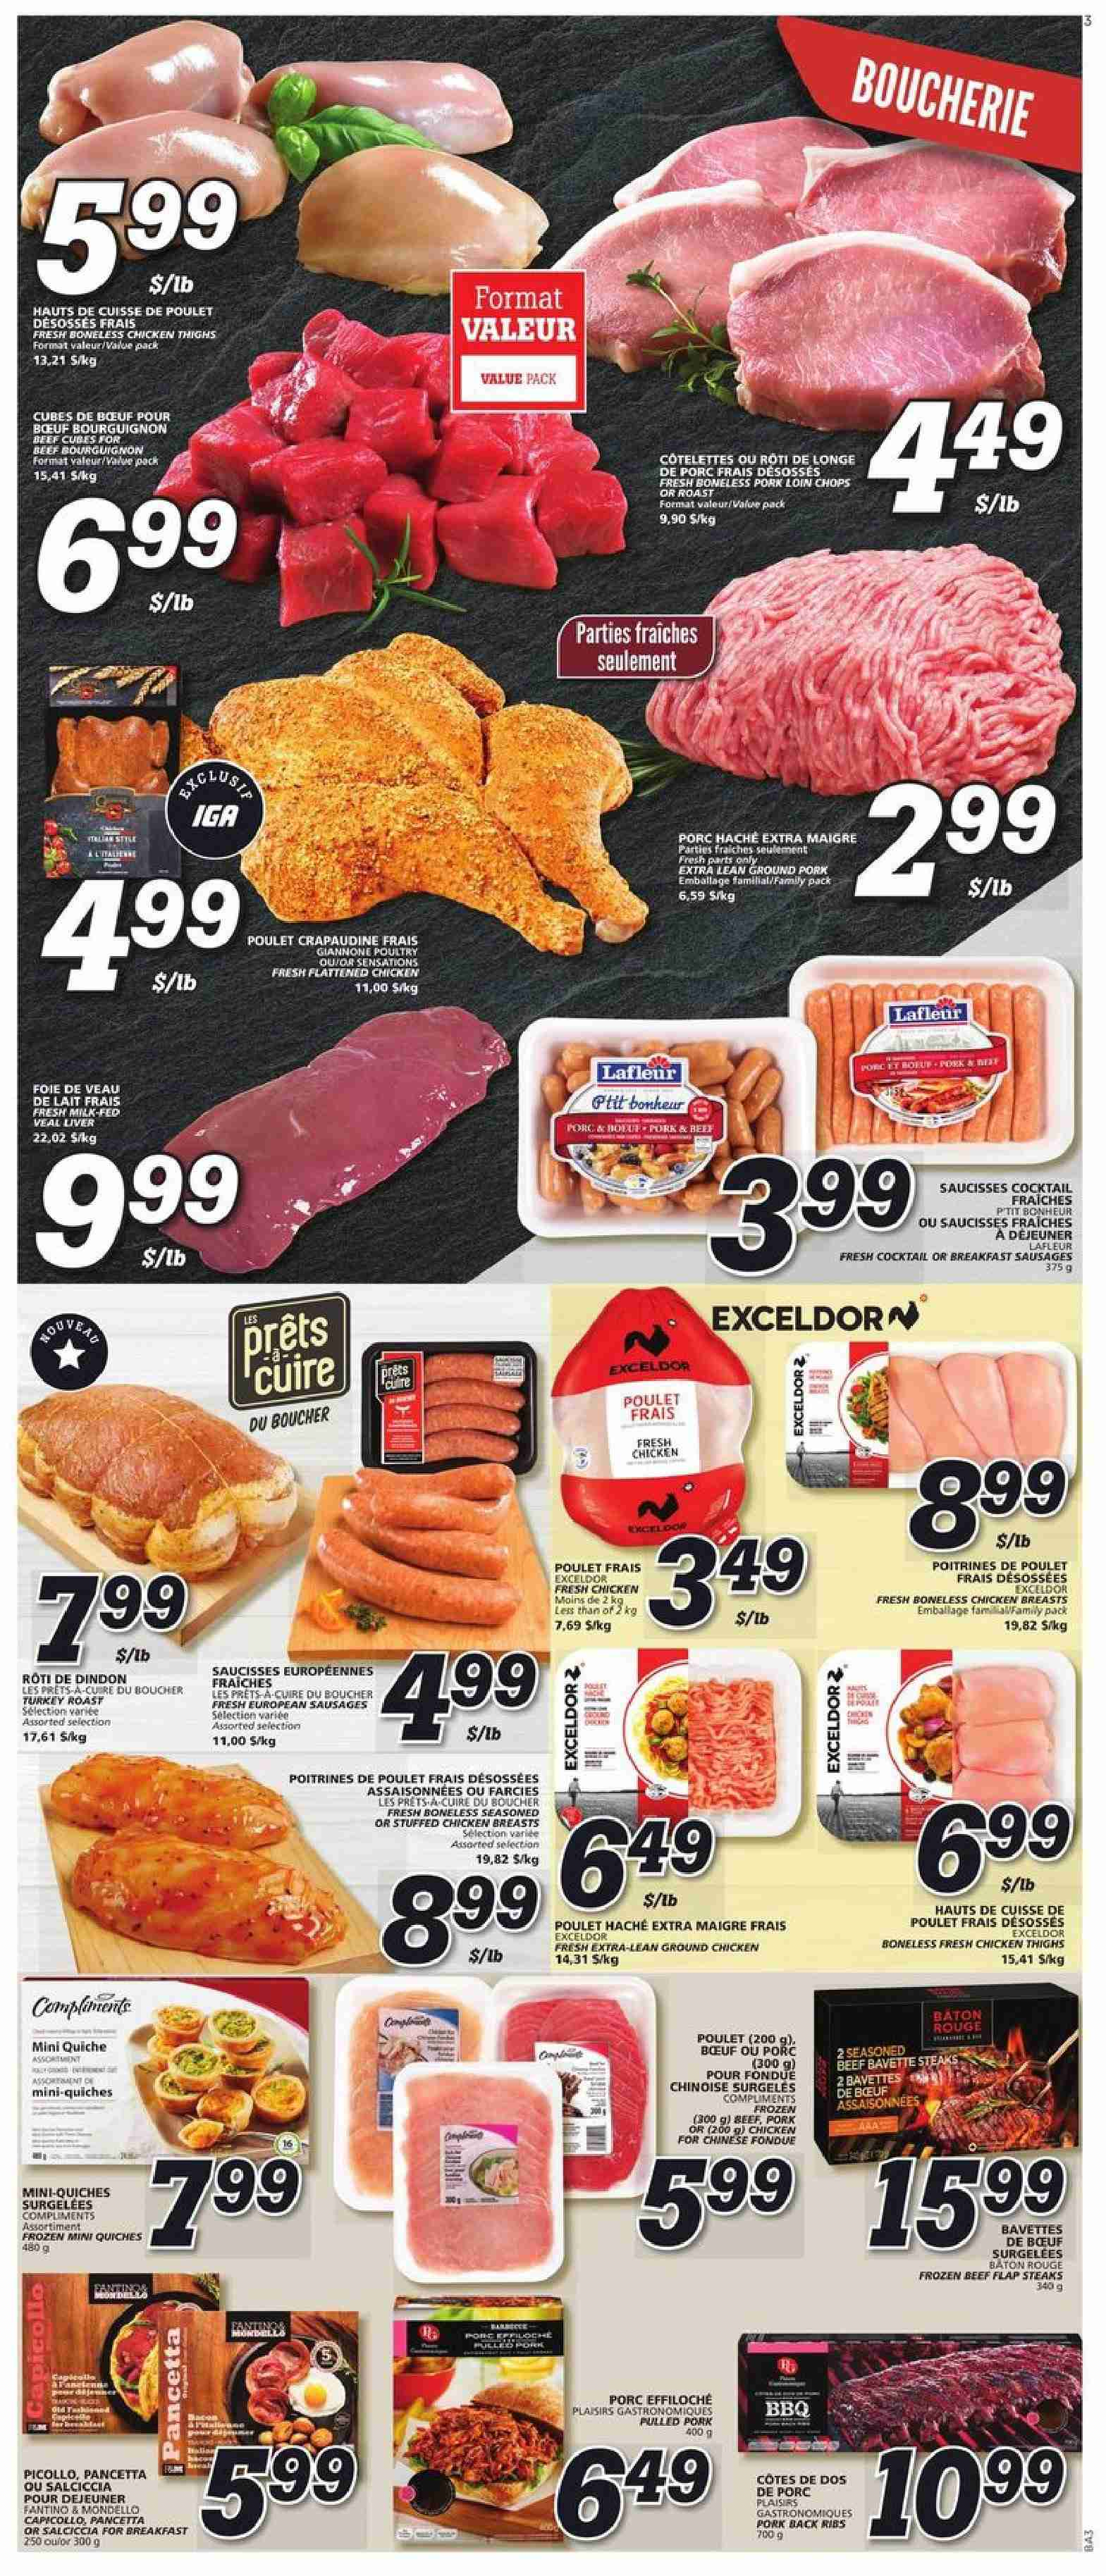 IGA Flyer  - January 17, 2019 - January 23, 2019. Page 3.